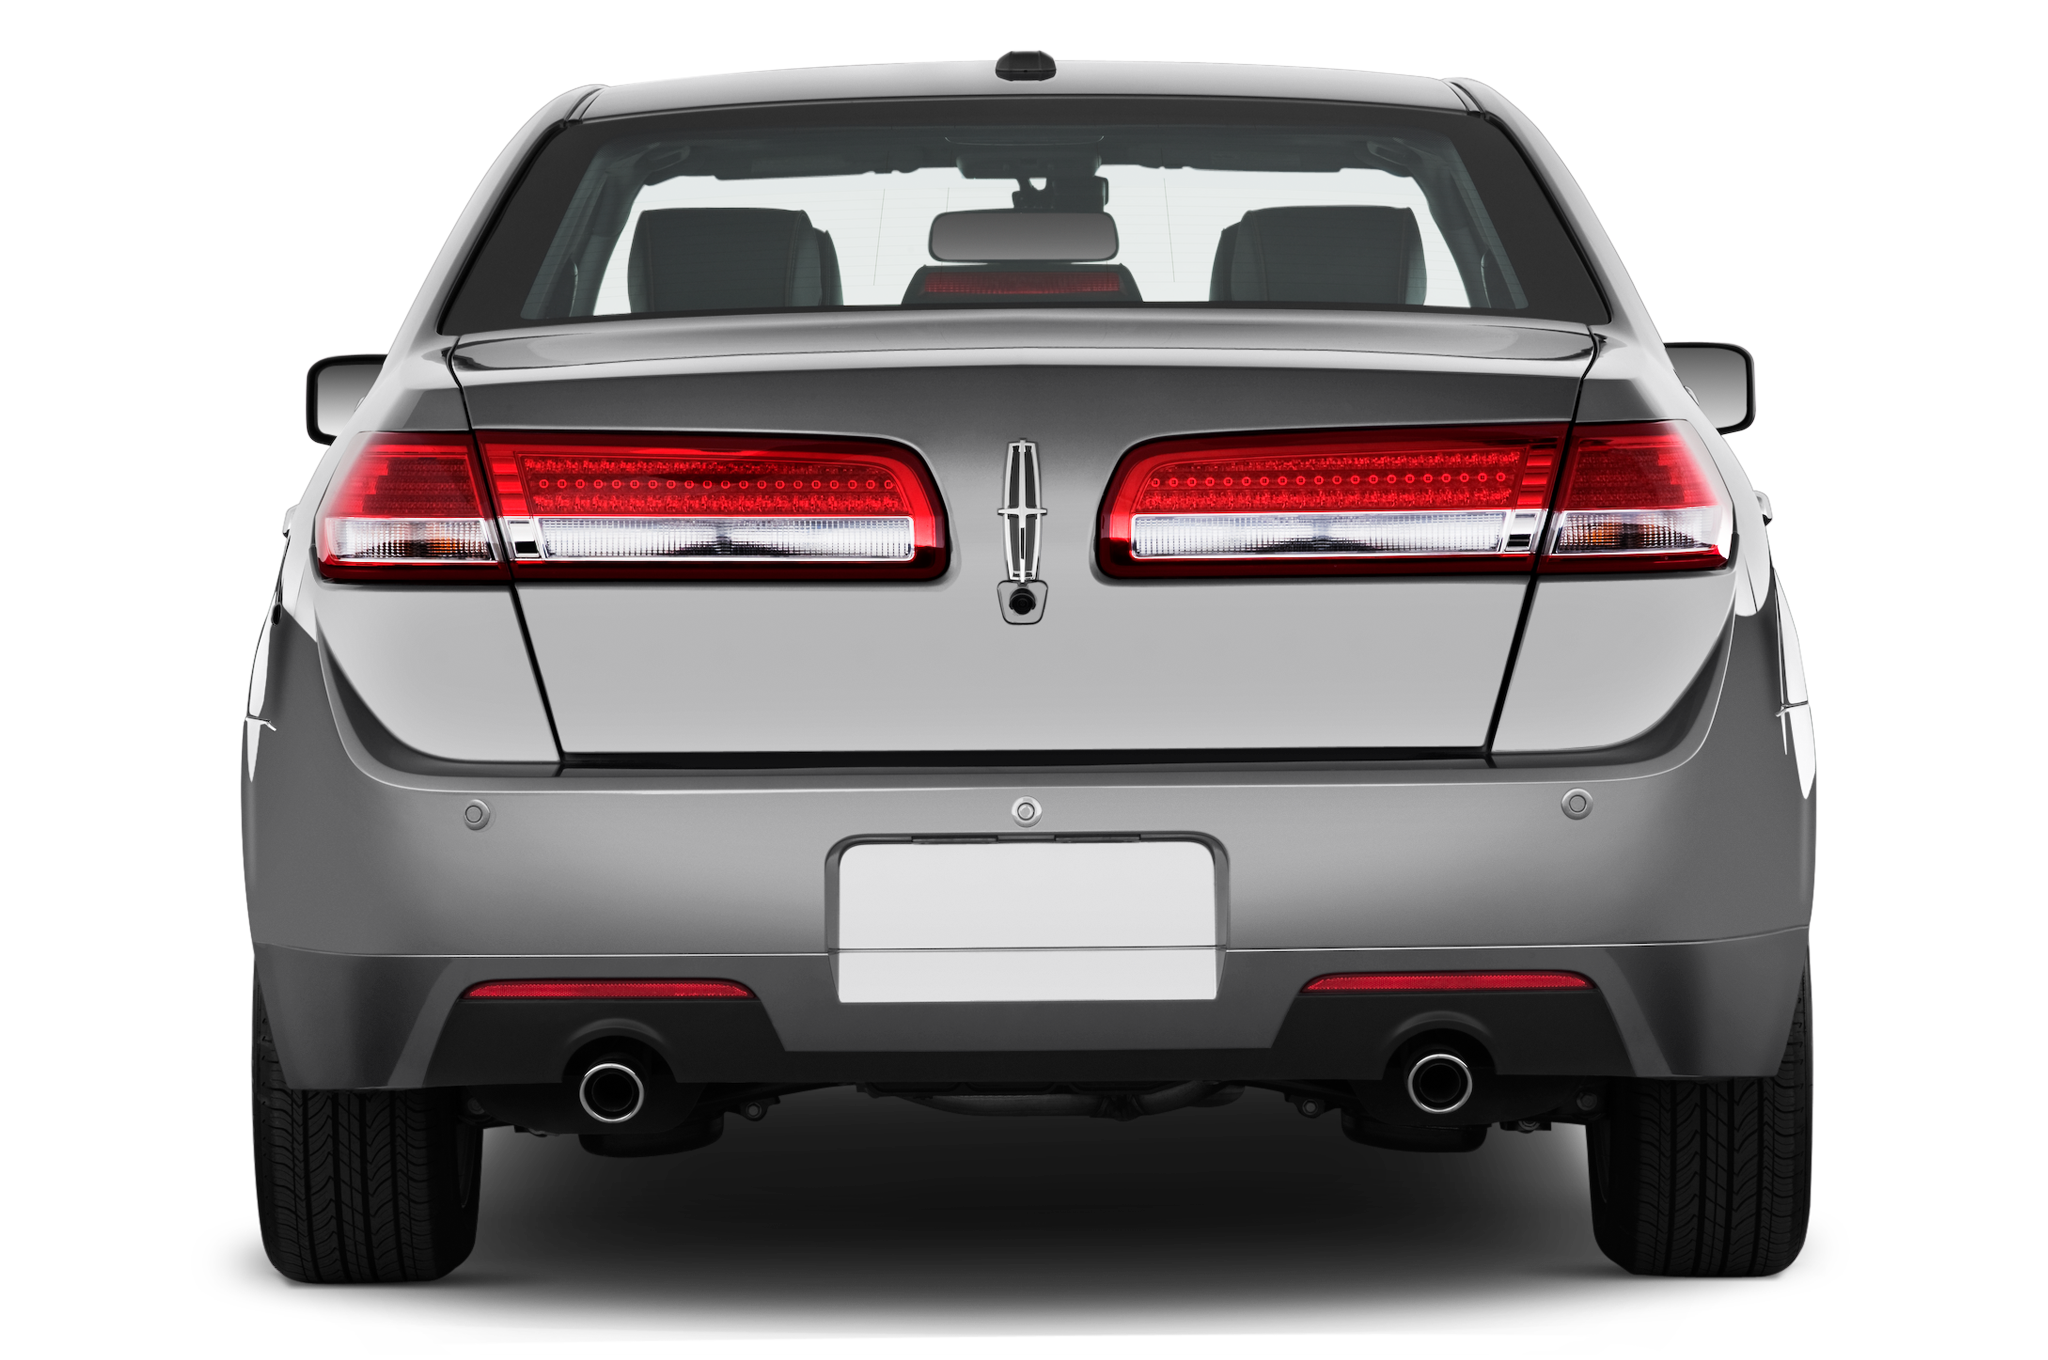 http://st.automobilemag.com/uploads/sites/10/2015/11/2012-lincoln-mkz-hybrid-sedan-rear-view.png